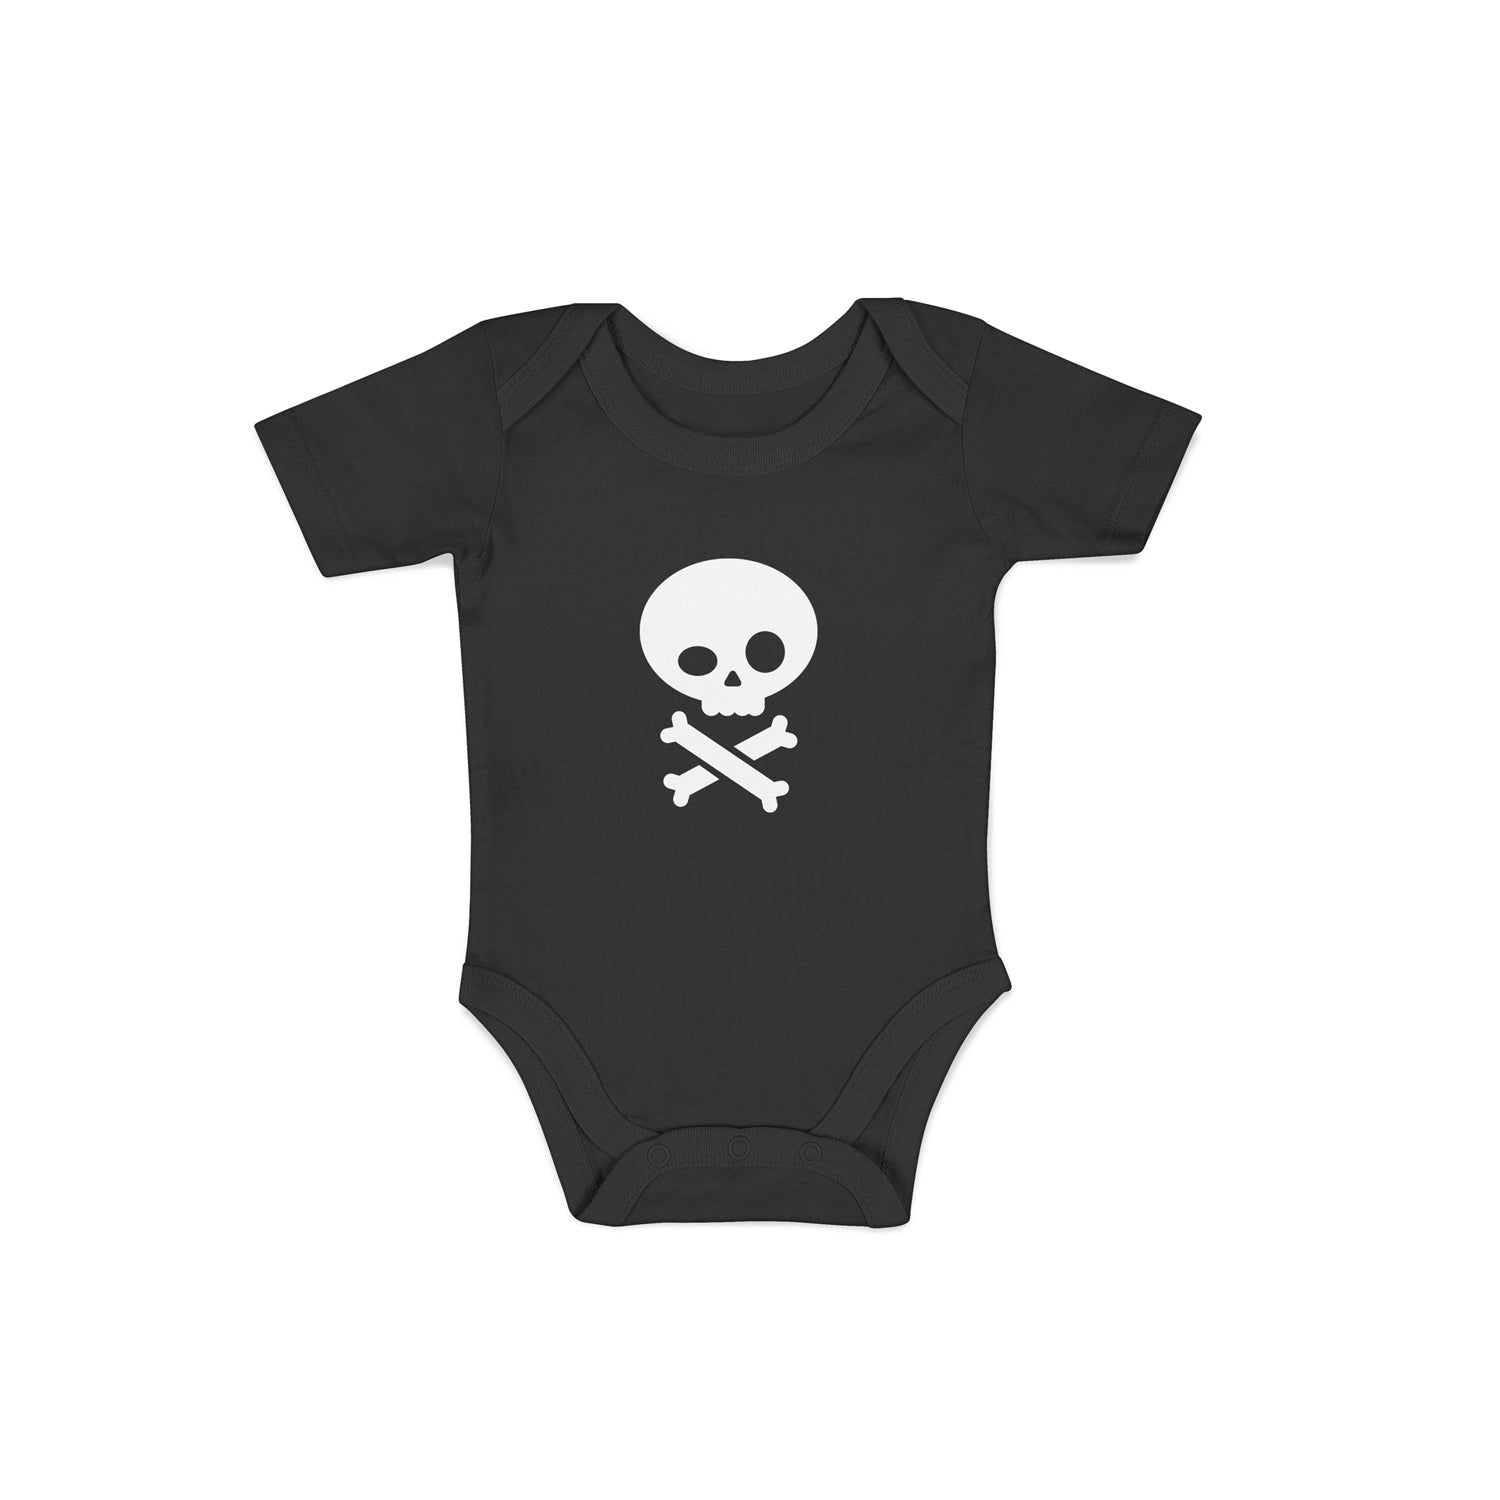 pirate baby grow in black with skull and crossbones design